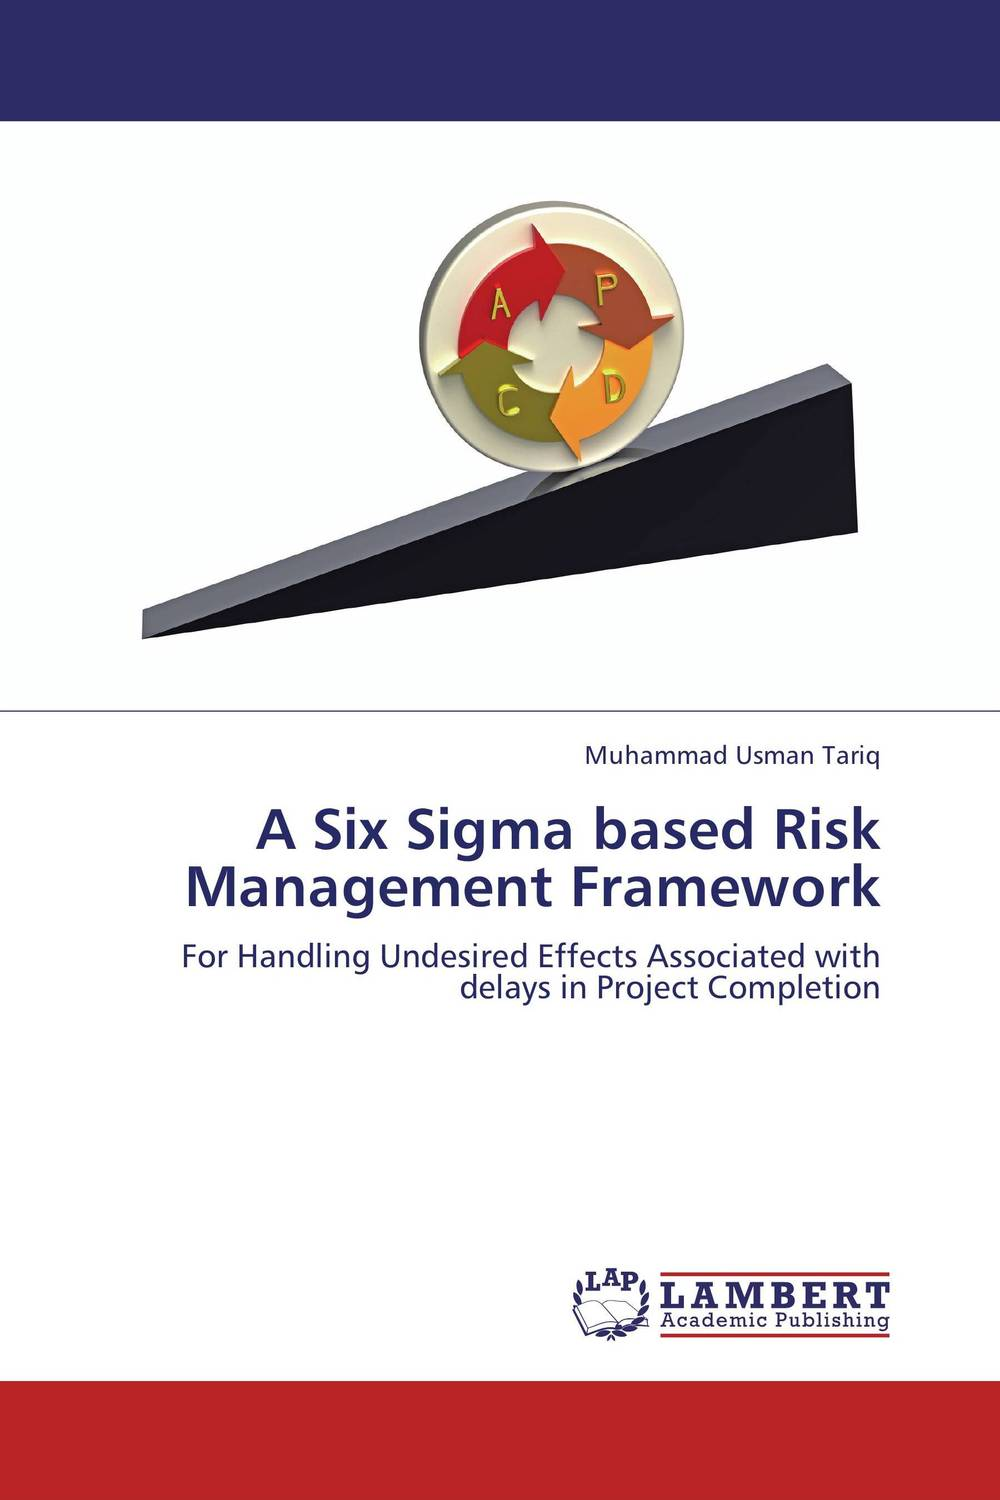 A Six Sigma based Risk Management Framework sim segal corporate value of enterprise risk management the next step in business management